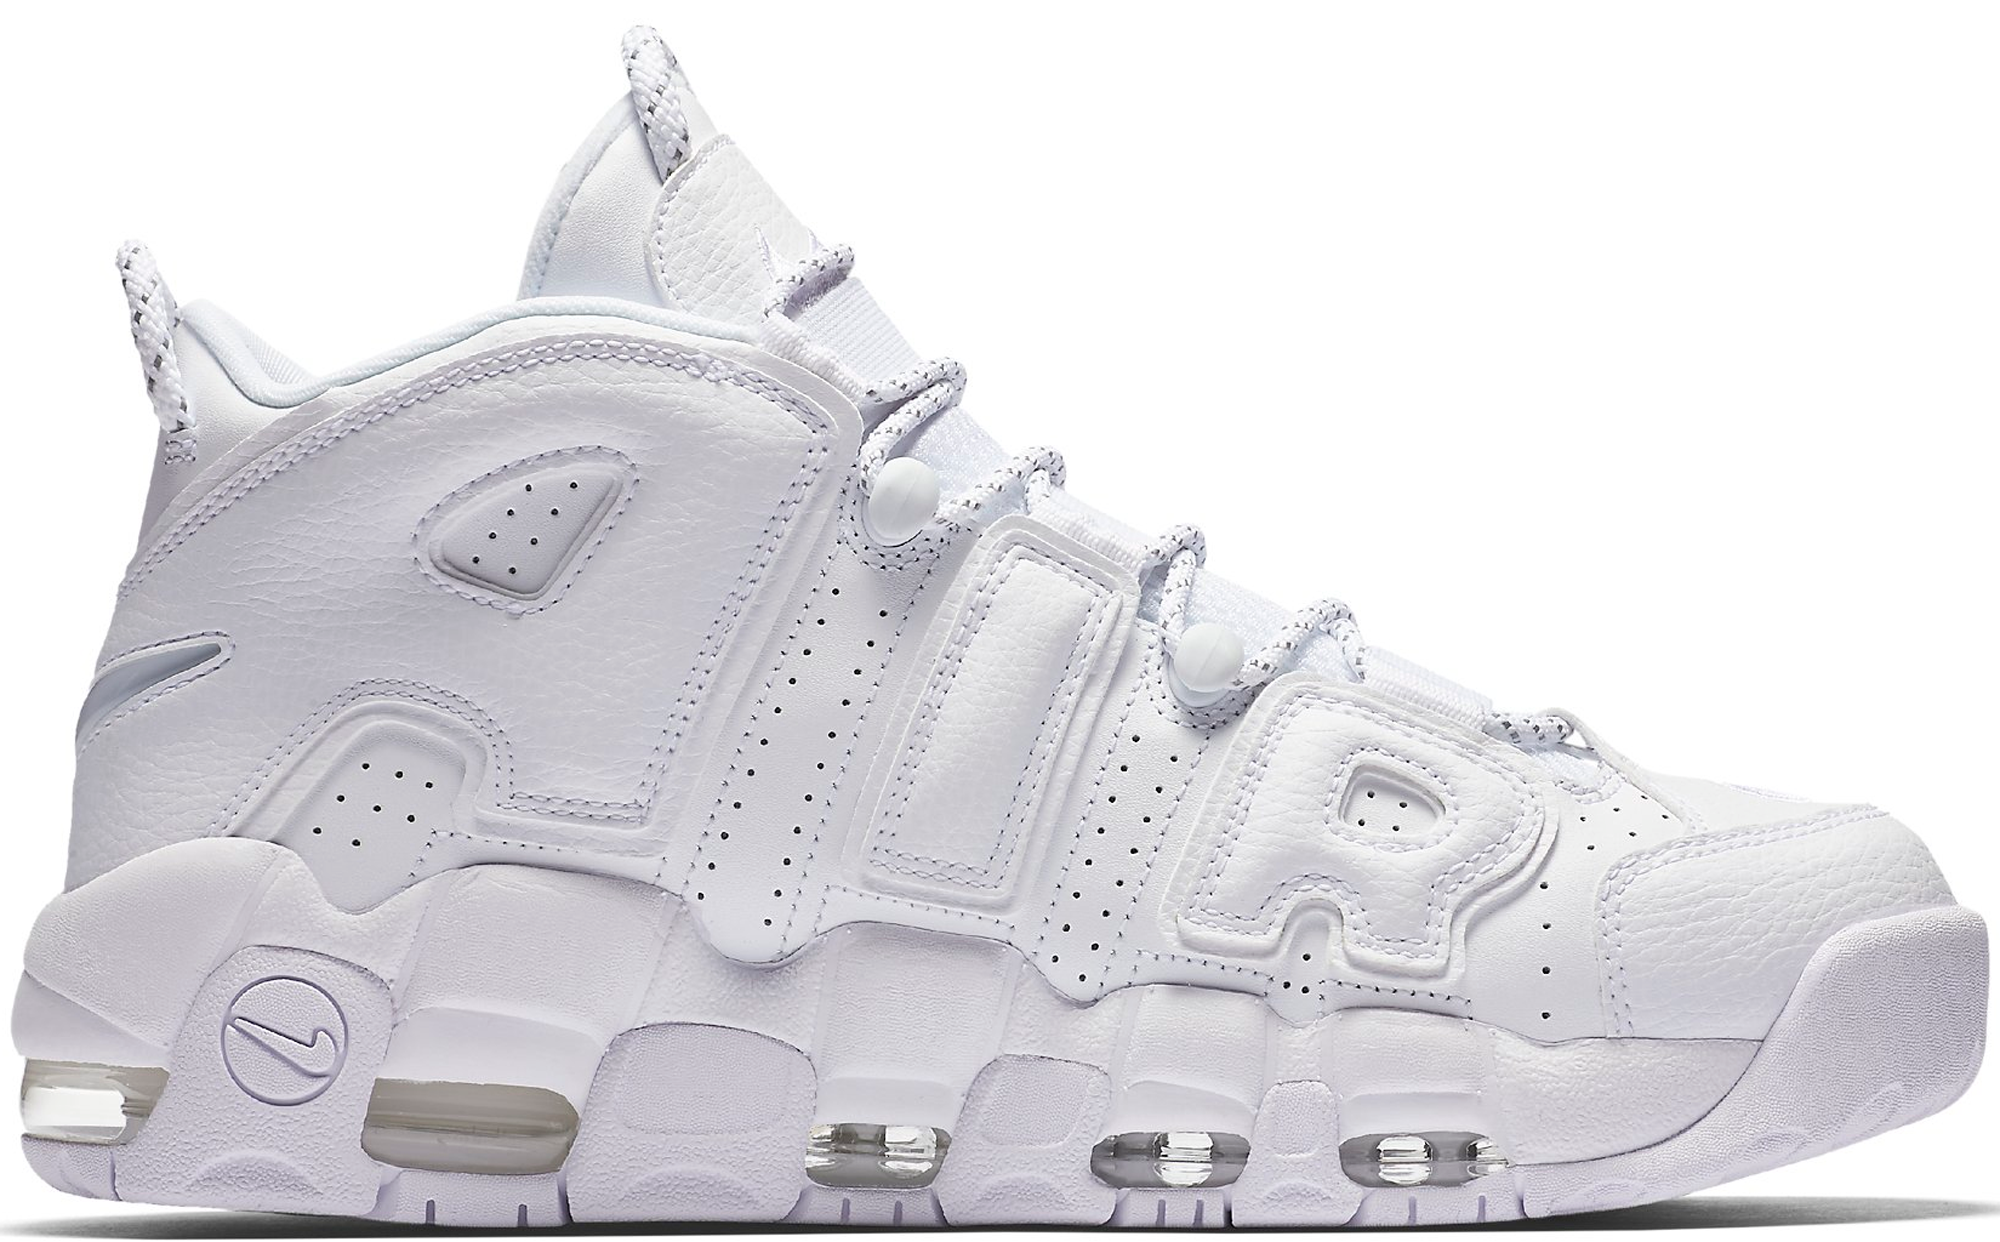 4c3b5a0c4 Nike Air More Uptempo Triple White - StockX News